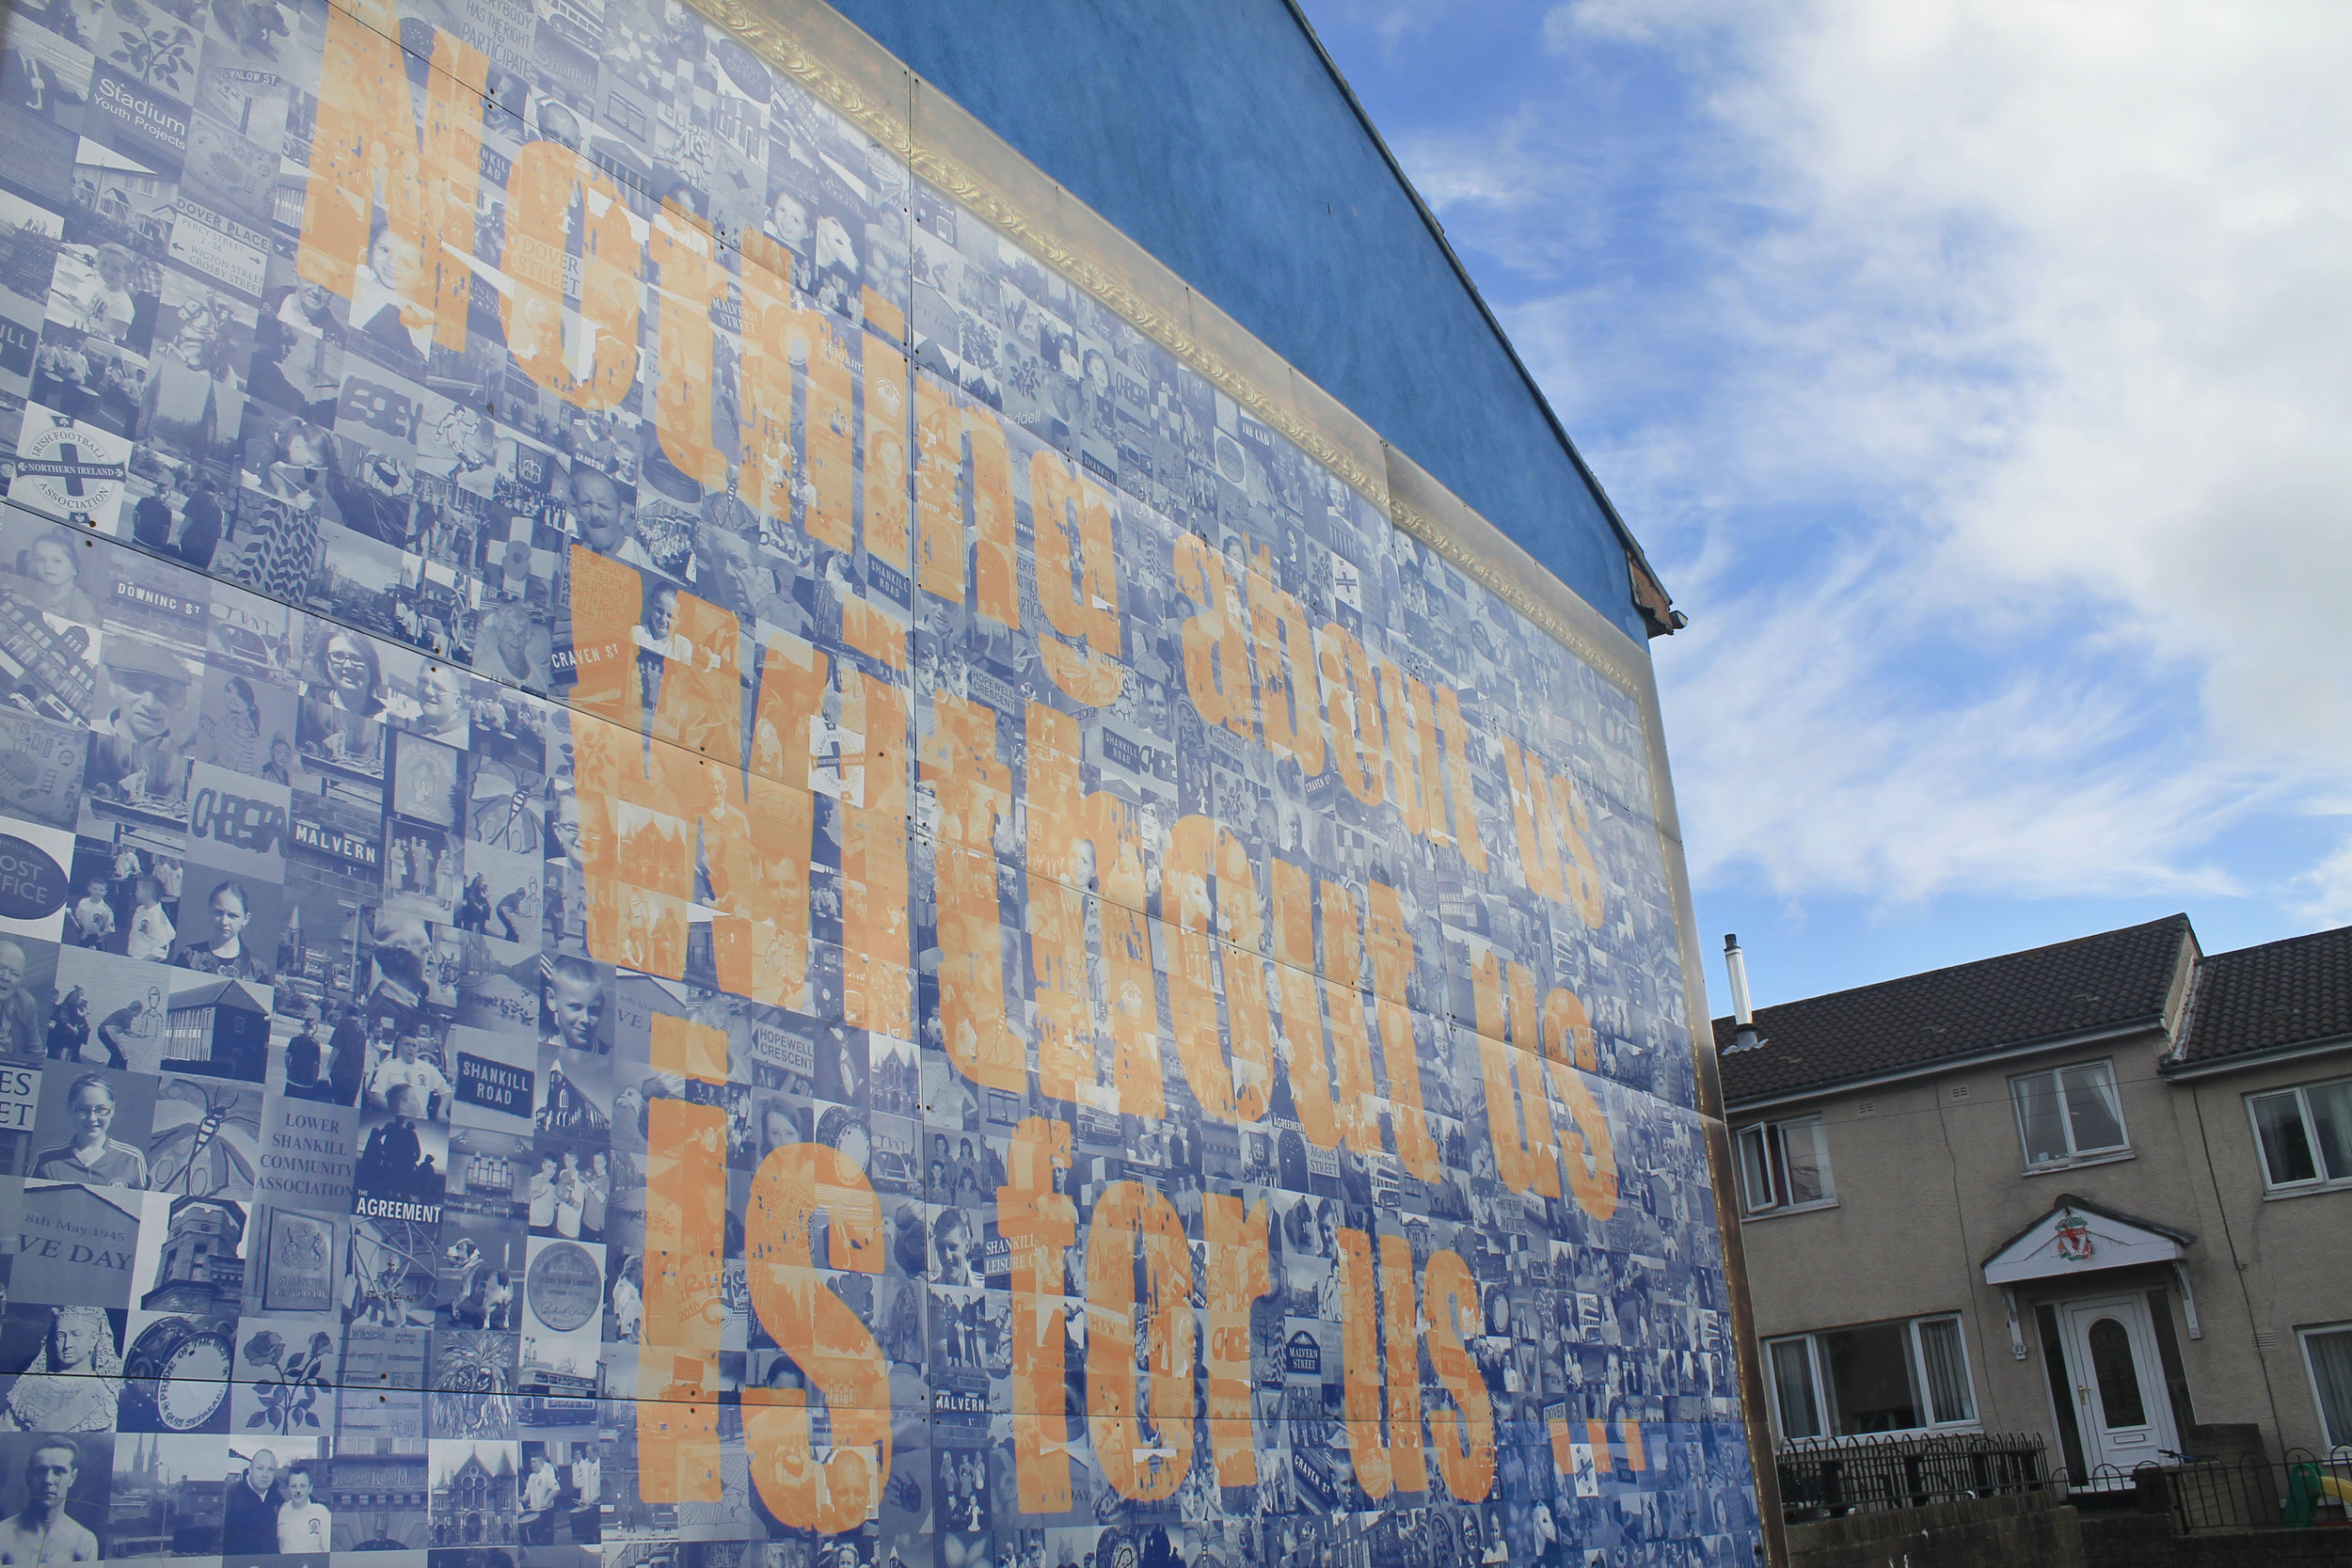 A mural in the Protestant district in Belfast. Catholics don't enter this part of town.